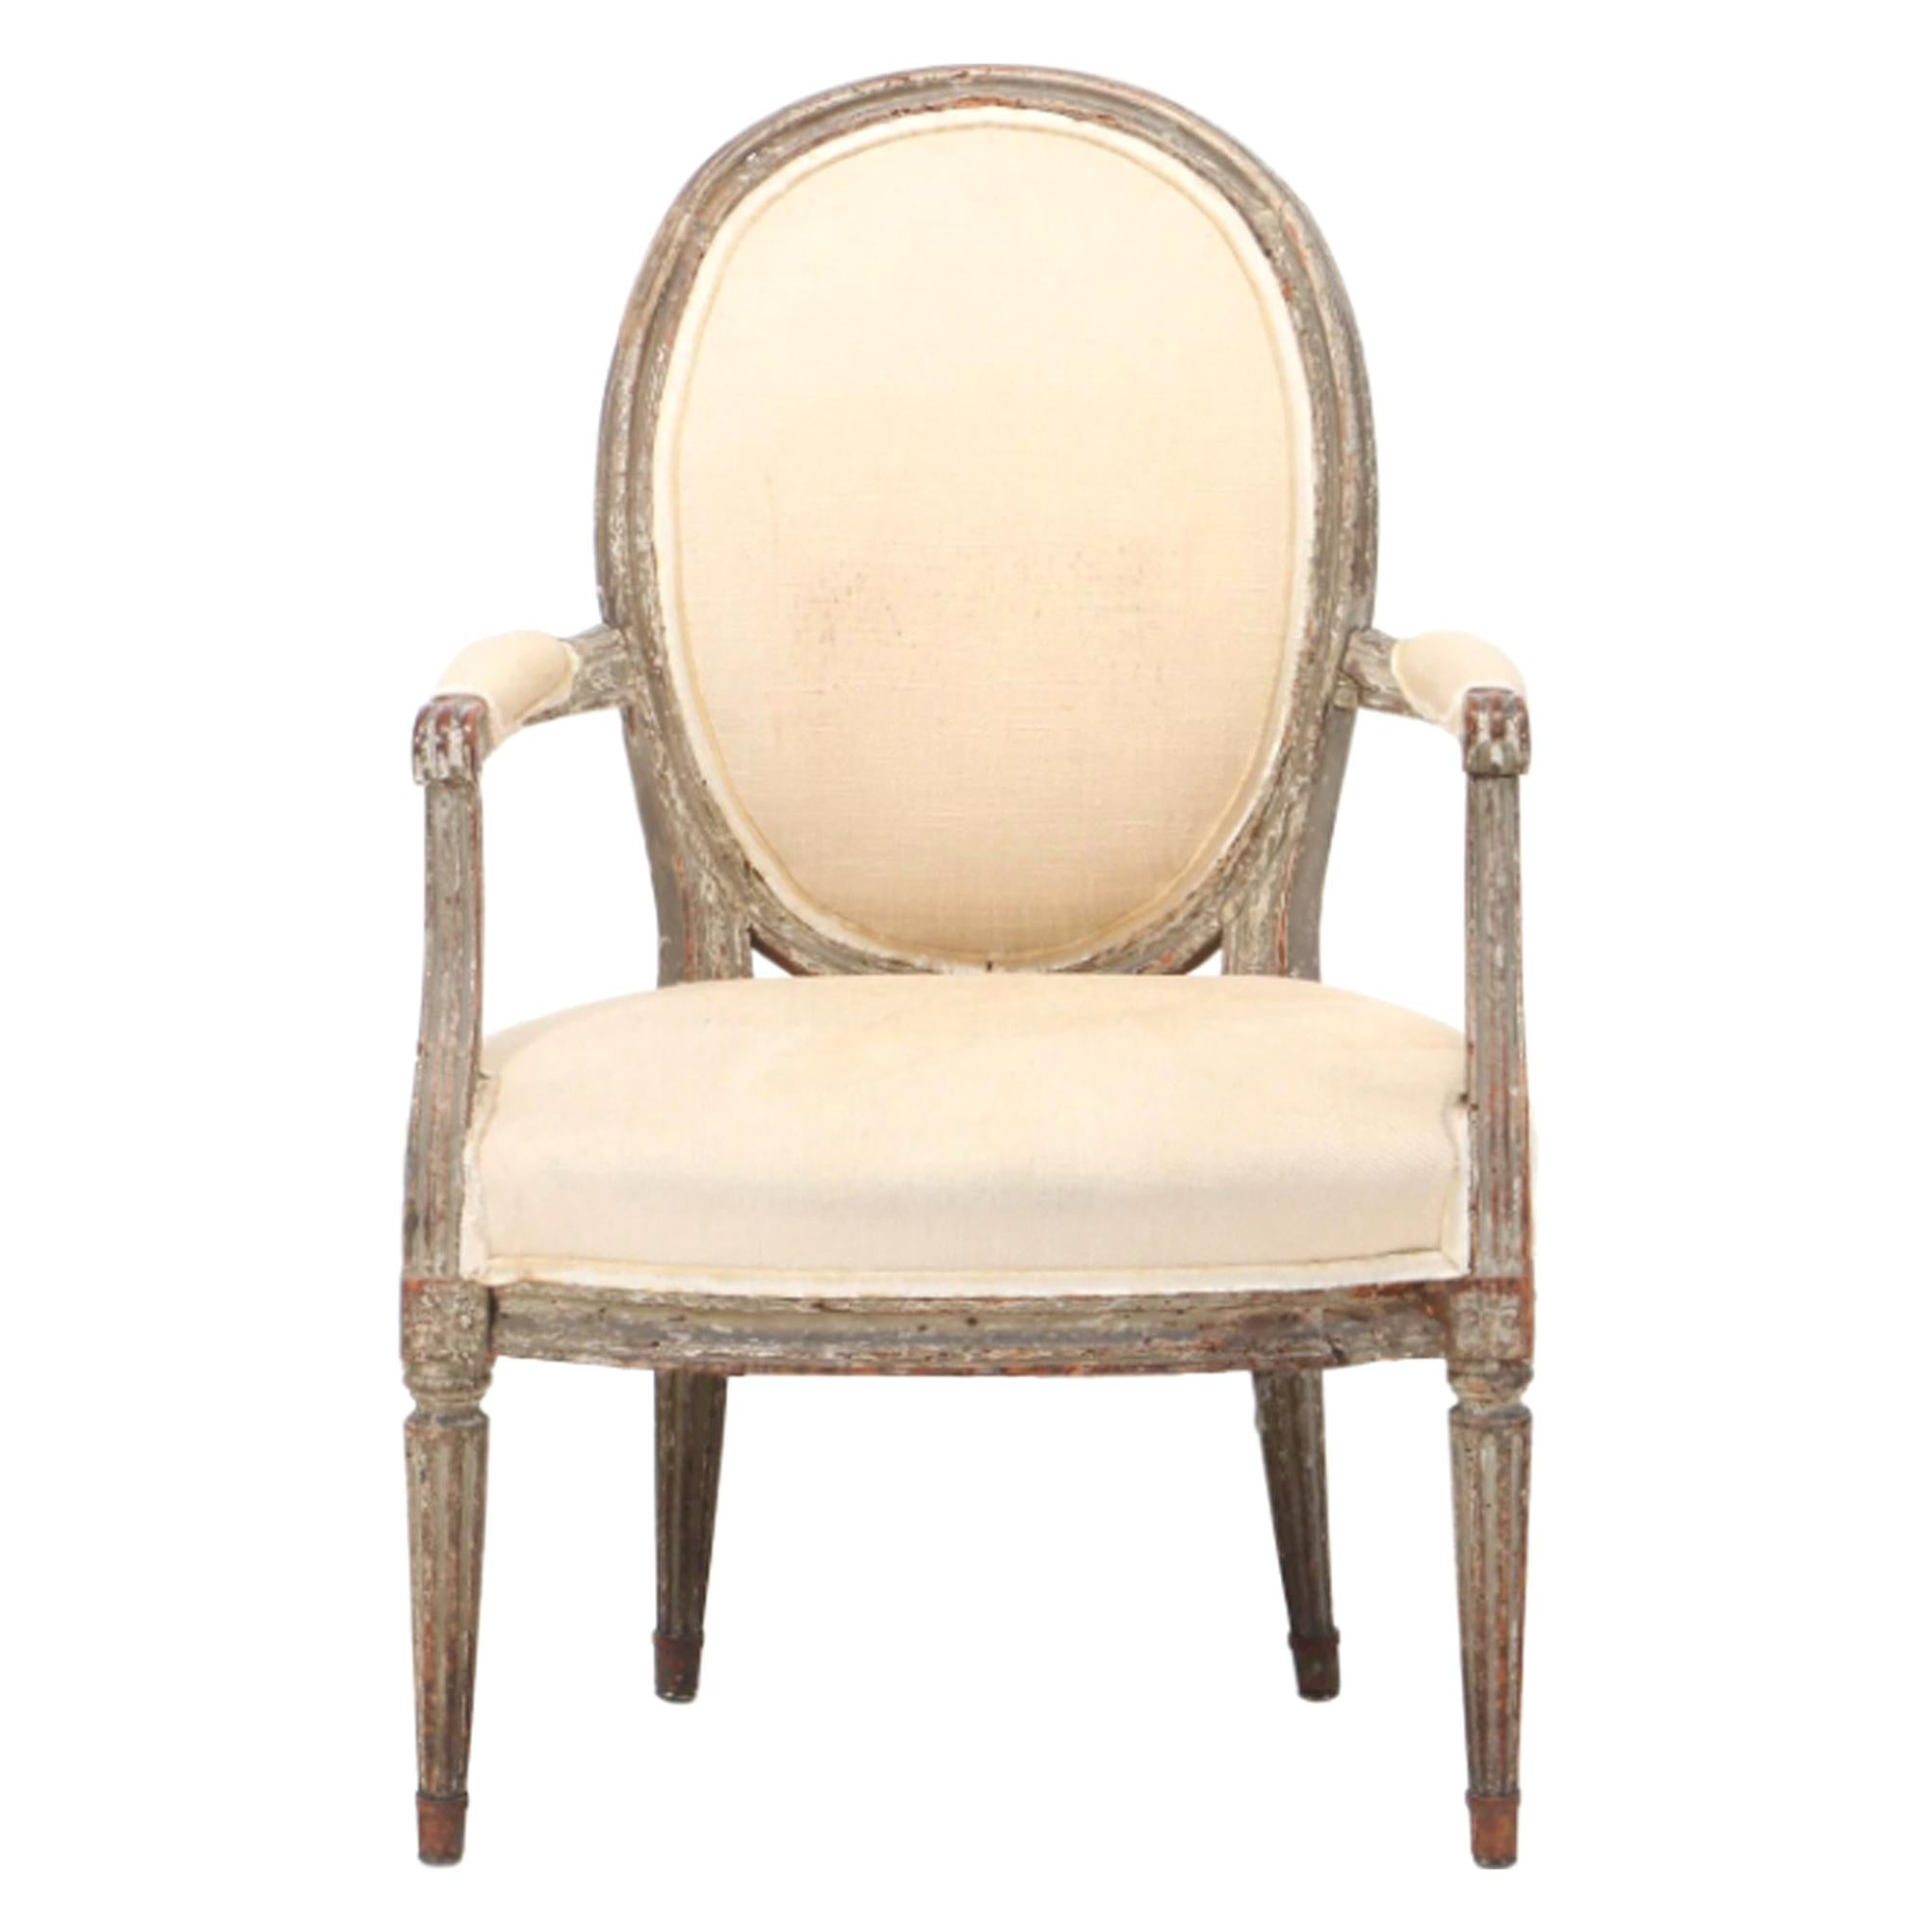 18th Century French Louis XVI Fauteuil